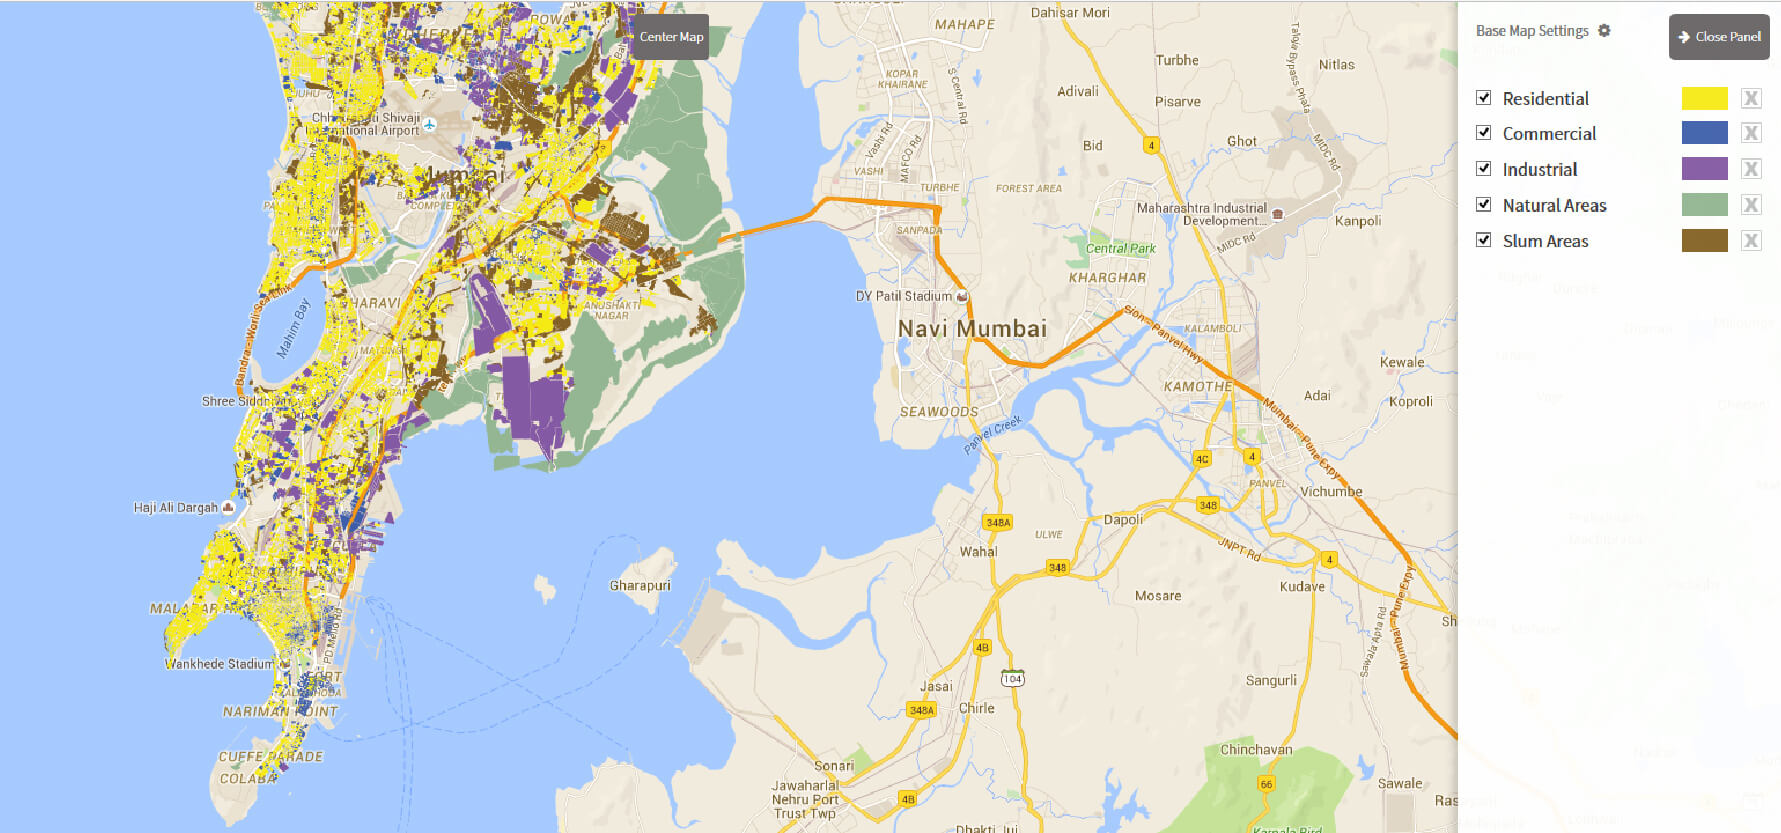 Mumbai's Interactive Land-Use Map Will Help Urban Planners